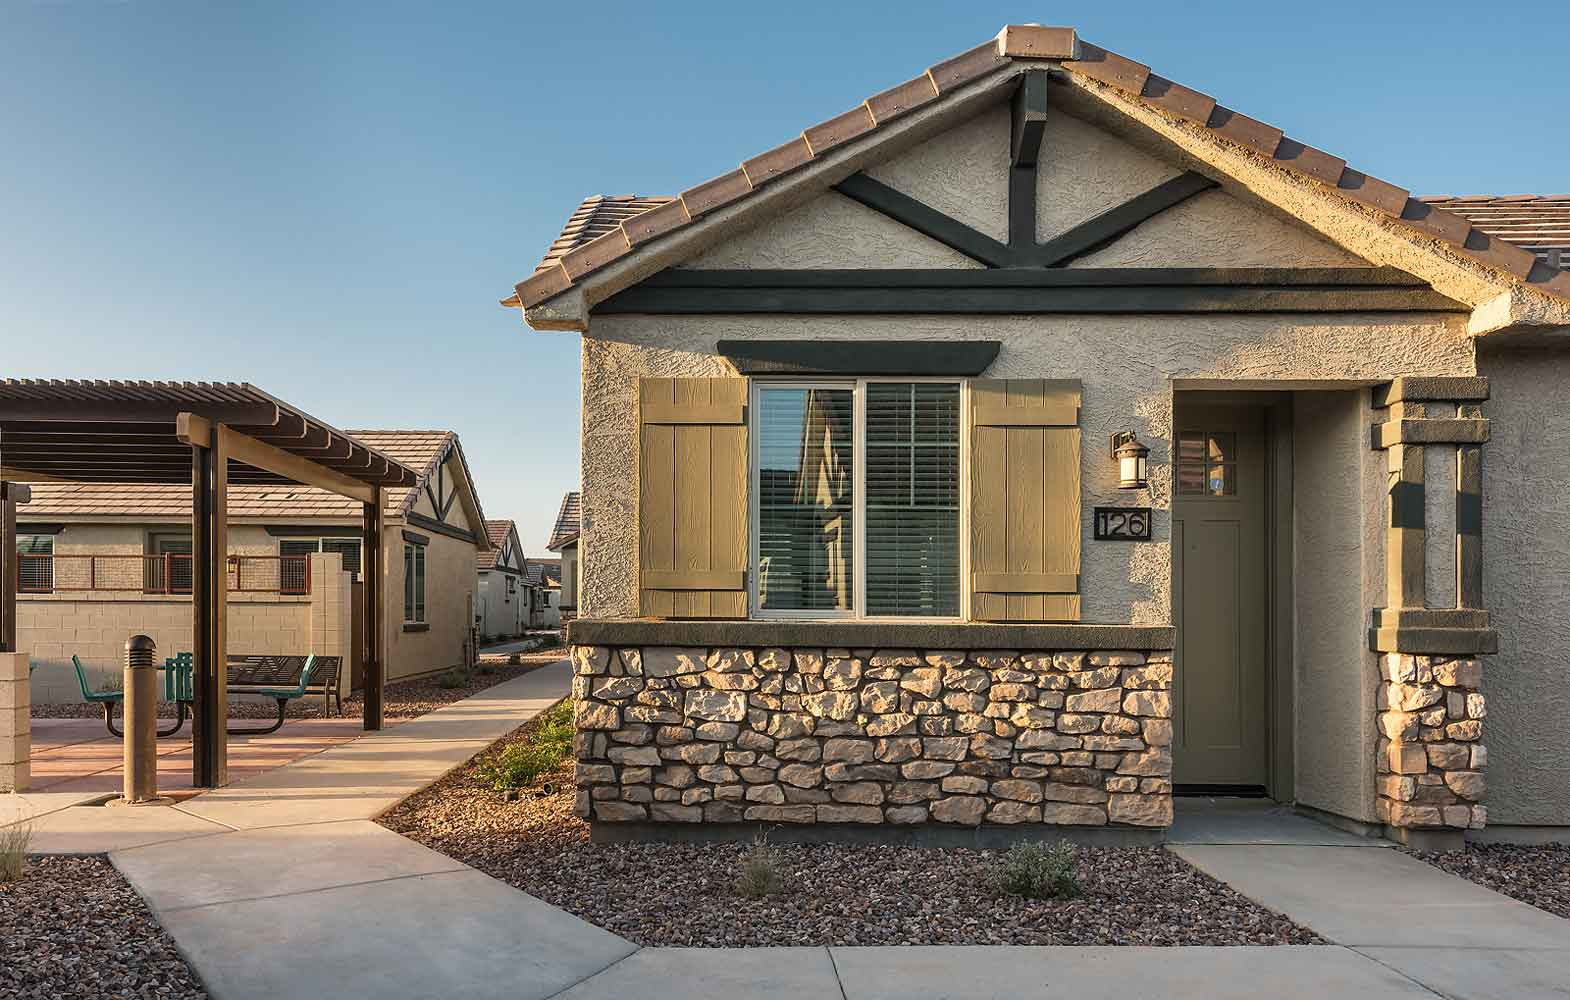 Luxury Single-Family Rentals at Olive Marketplace Apartments in Glendale, AZ